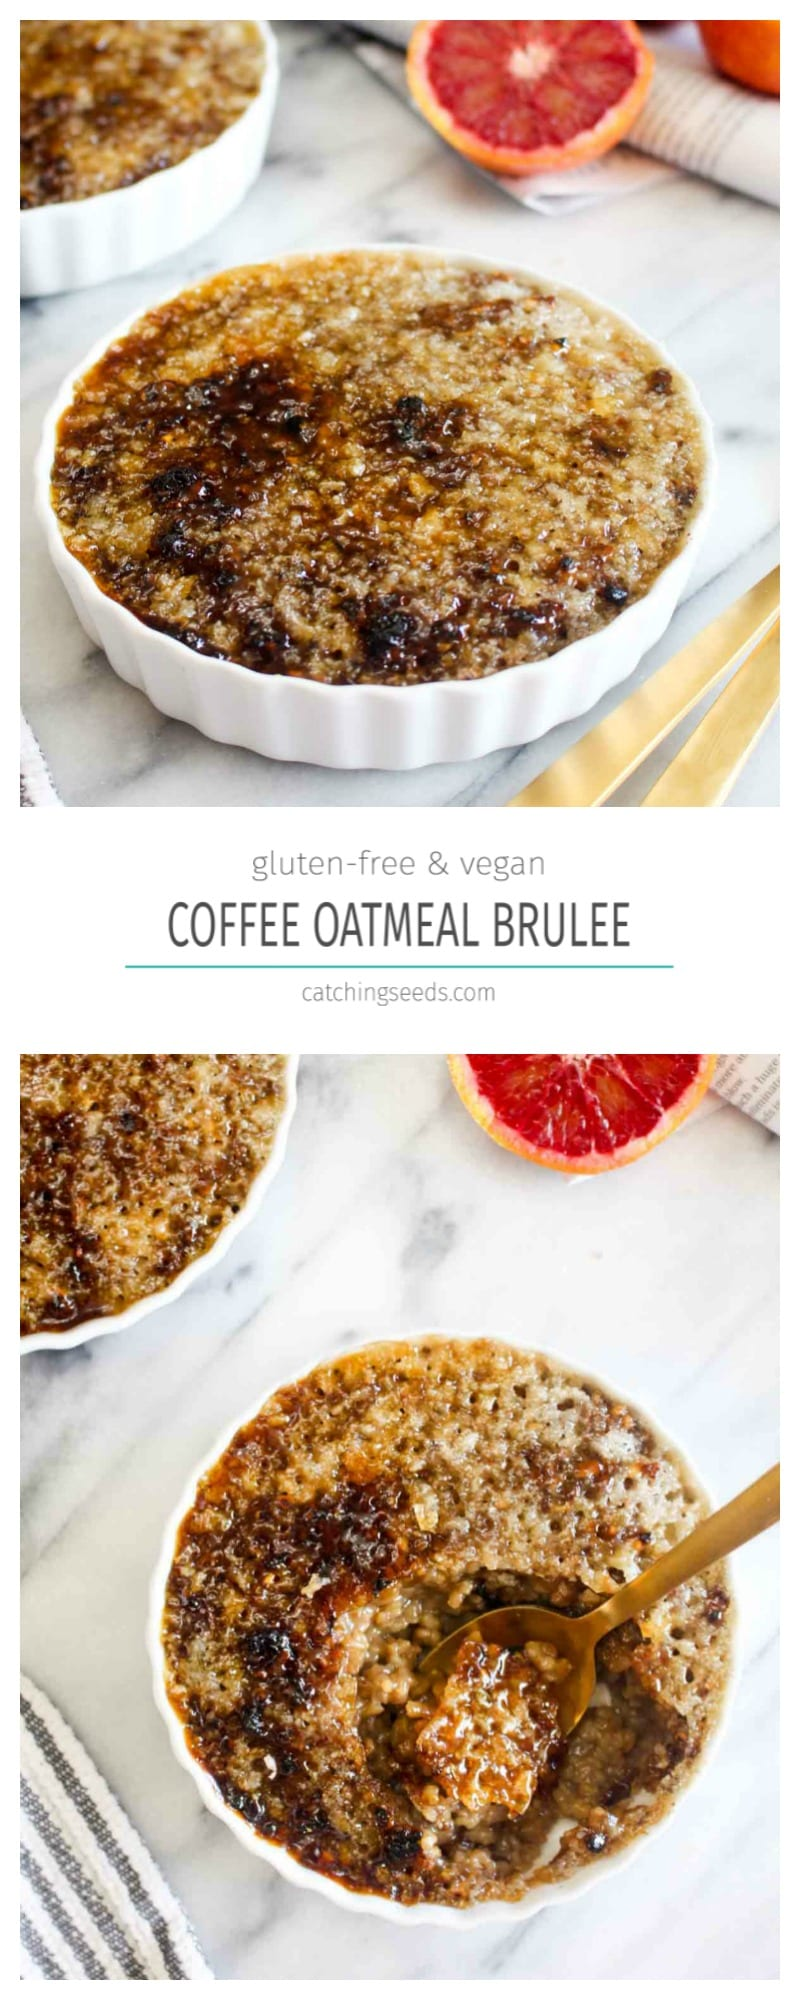 This Coffee Steel Cut Oatmeal Brulee recipe is like having your morning coffee, breakfast, and dessert all in one! This gluten-free and vegan recipe is easier than you might think. | CatchingSeeds.com